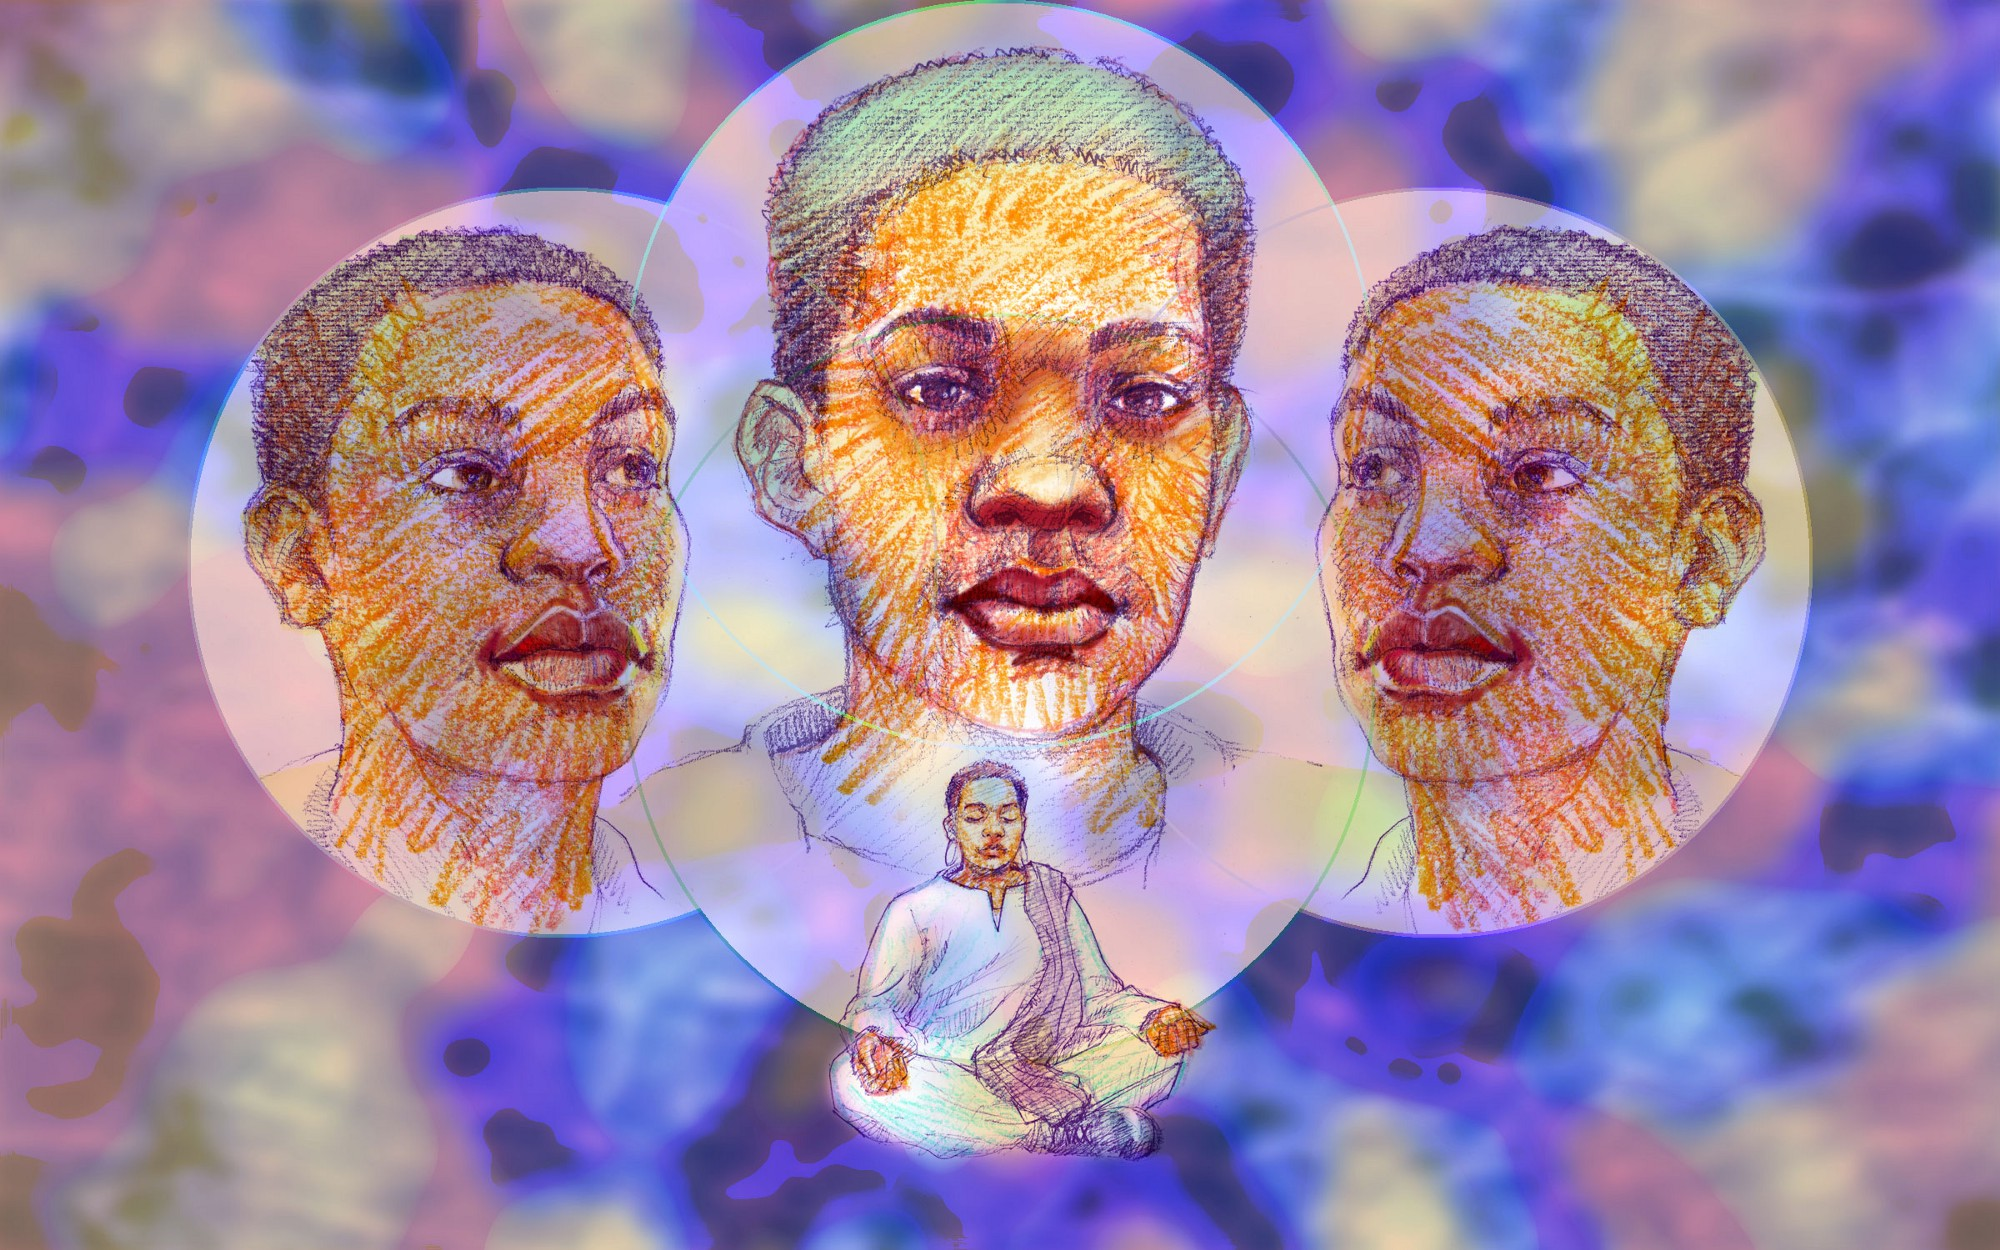 An illustration of a gender non-conforming person meditating. There are three pop-up images of their face above.